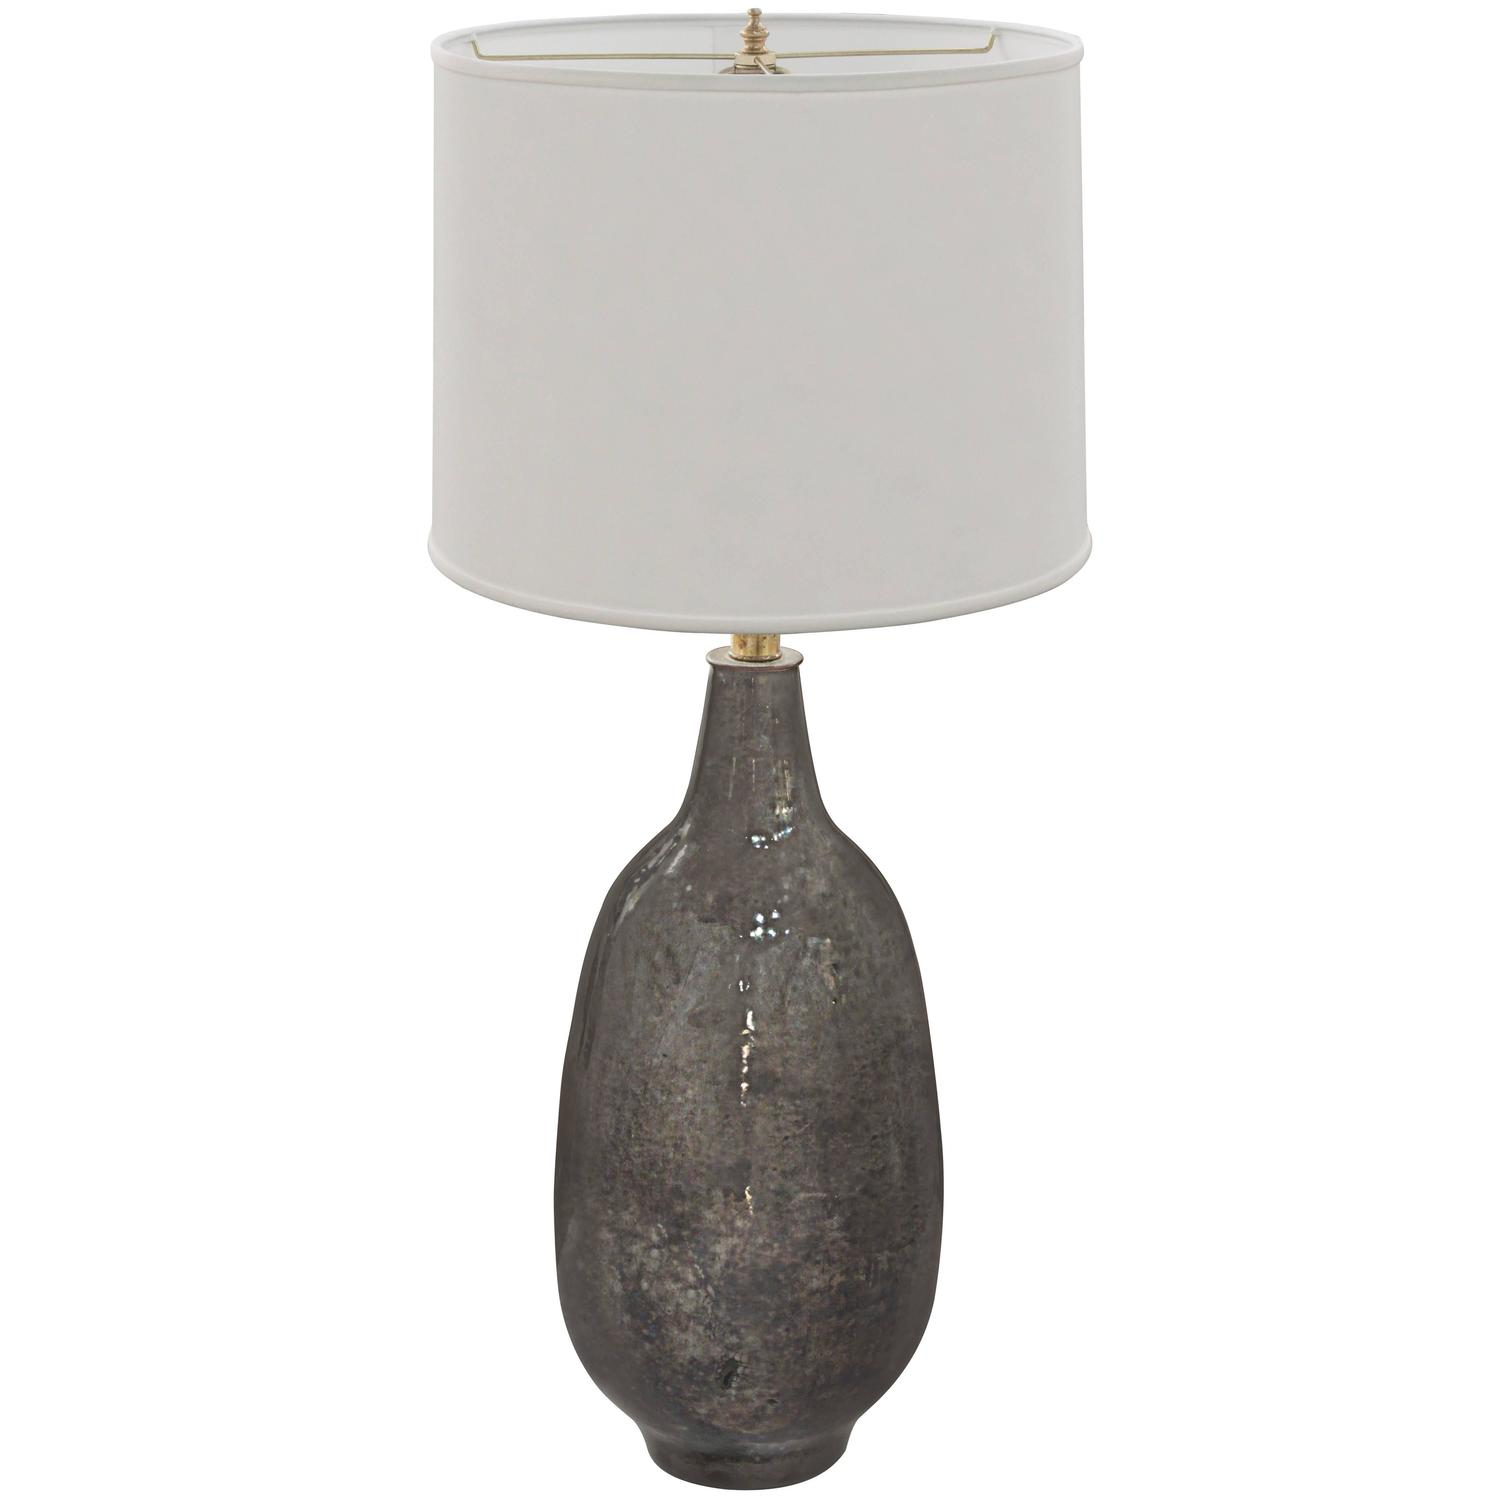 Hand Thrown Ceramic Table Lamp With Gunmetal Glaze By